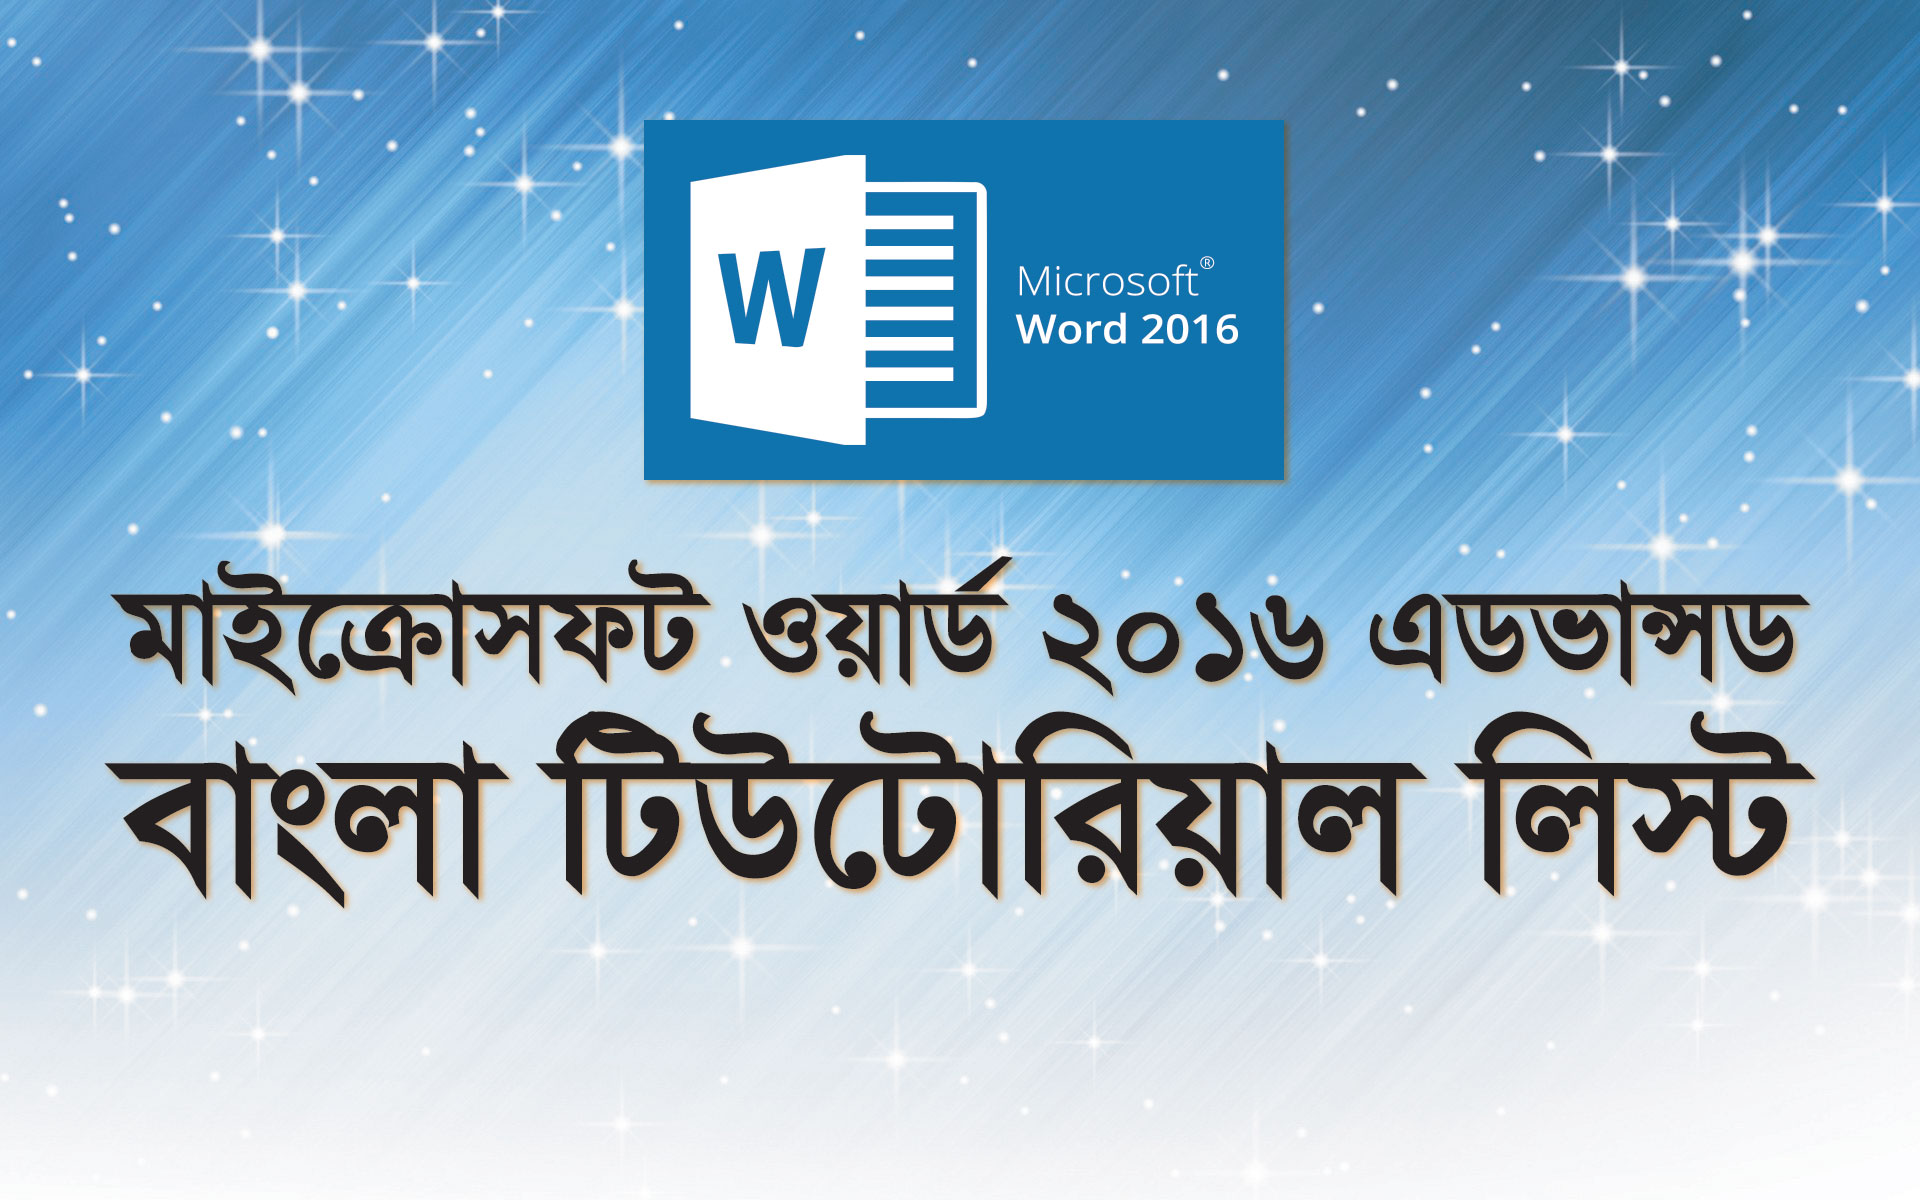 Microsoft Word 2016 Feature Image